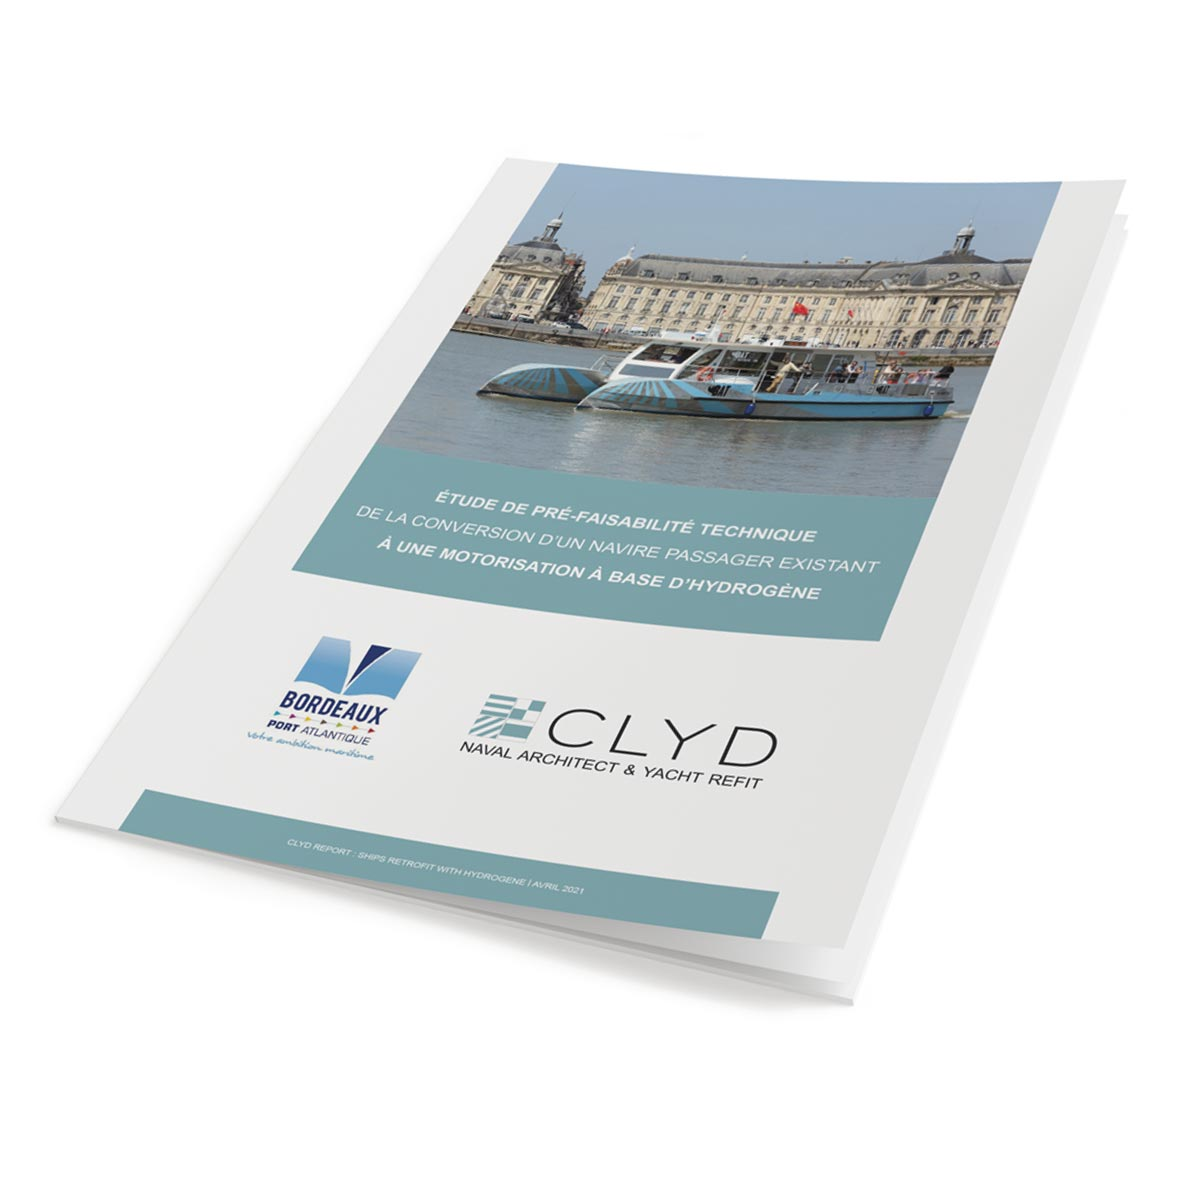 Clyd - Rapport